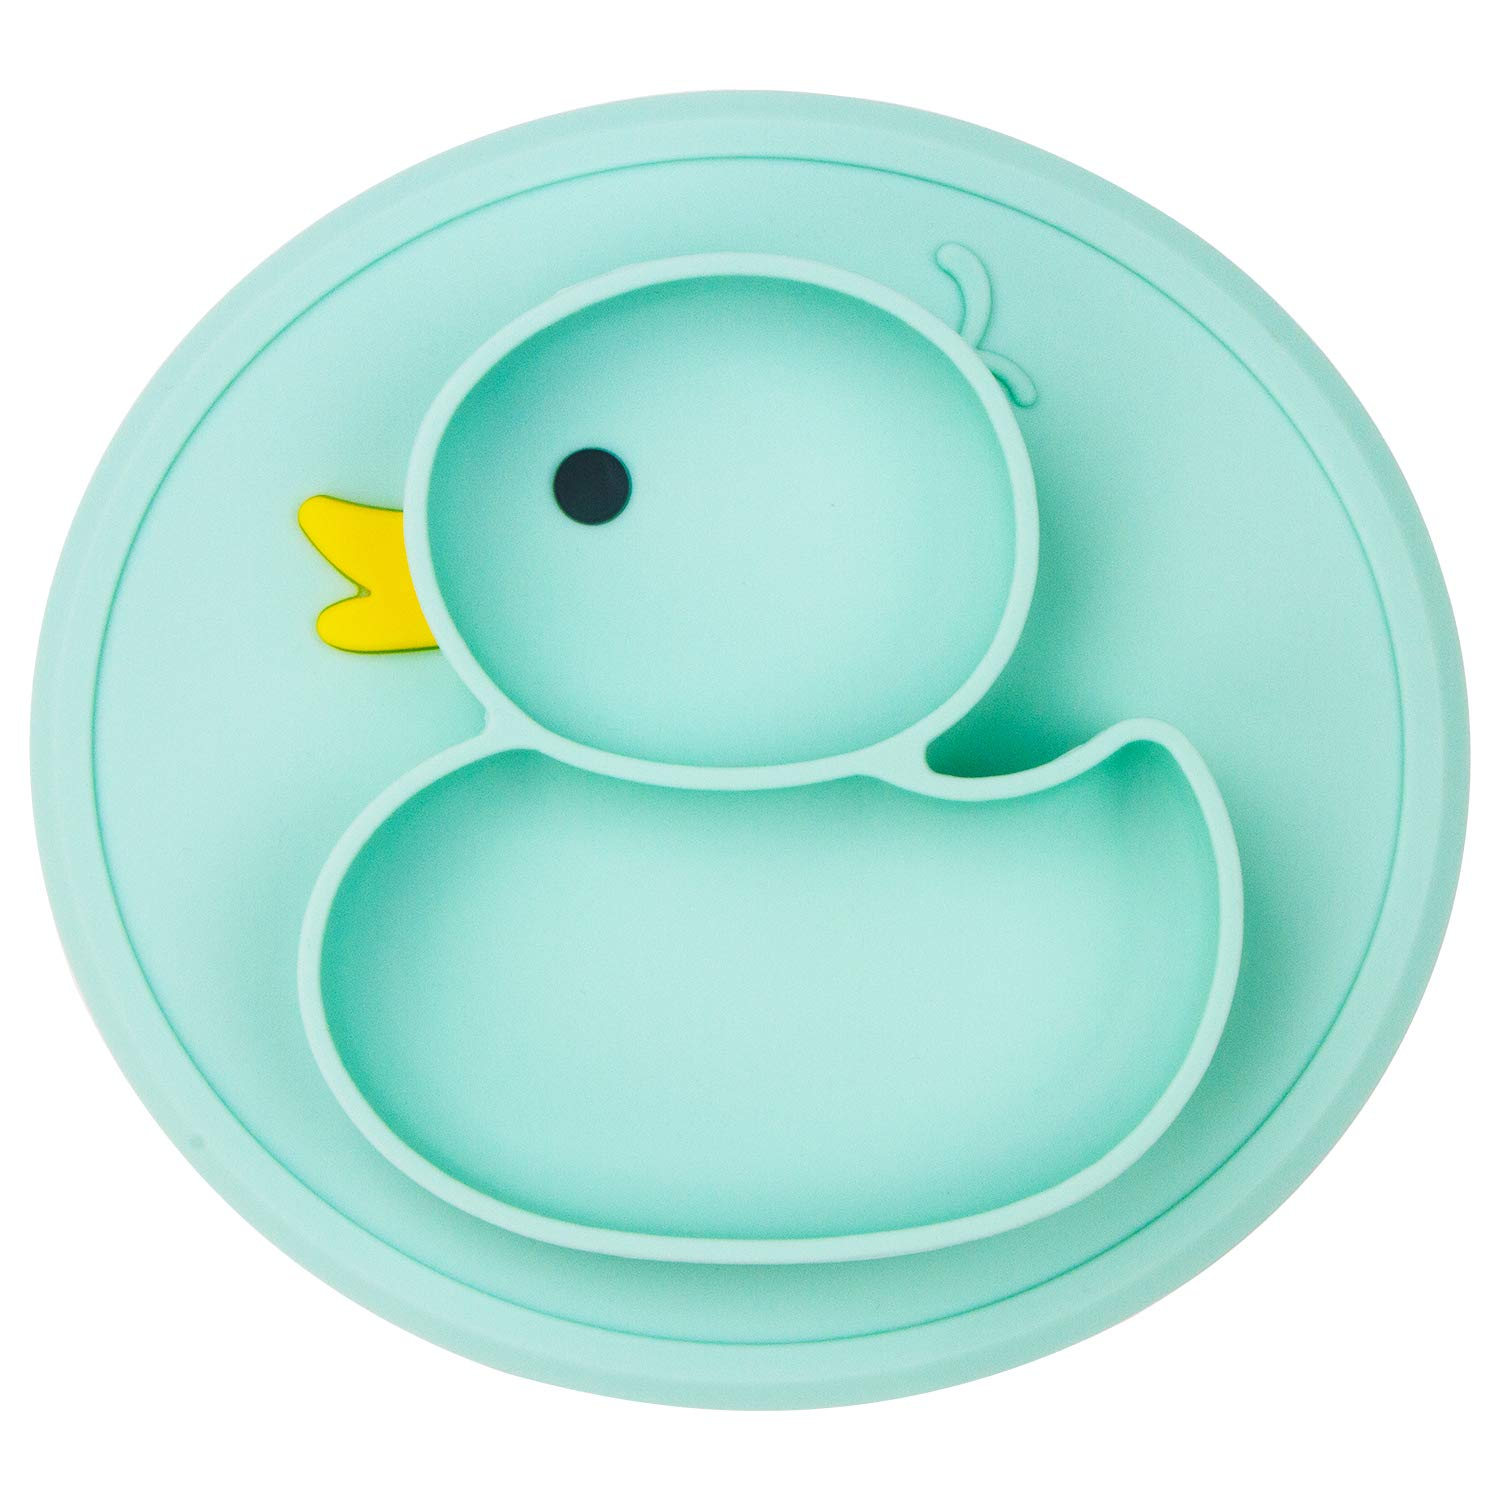 BPA-Free FDA Approved Strong Suction Plates for Toddlers Portable Baby Plate for Toddlers and Kids Dishwasher and Microwave Safe Silicone Placemat 22 * 20 * 2.5cm Qshare Toddler Plate